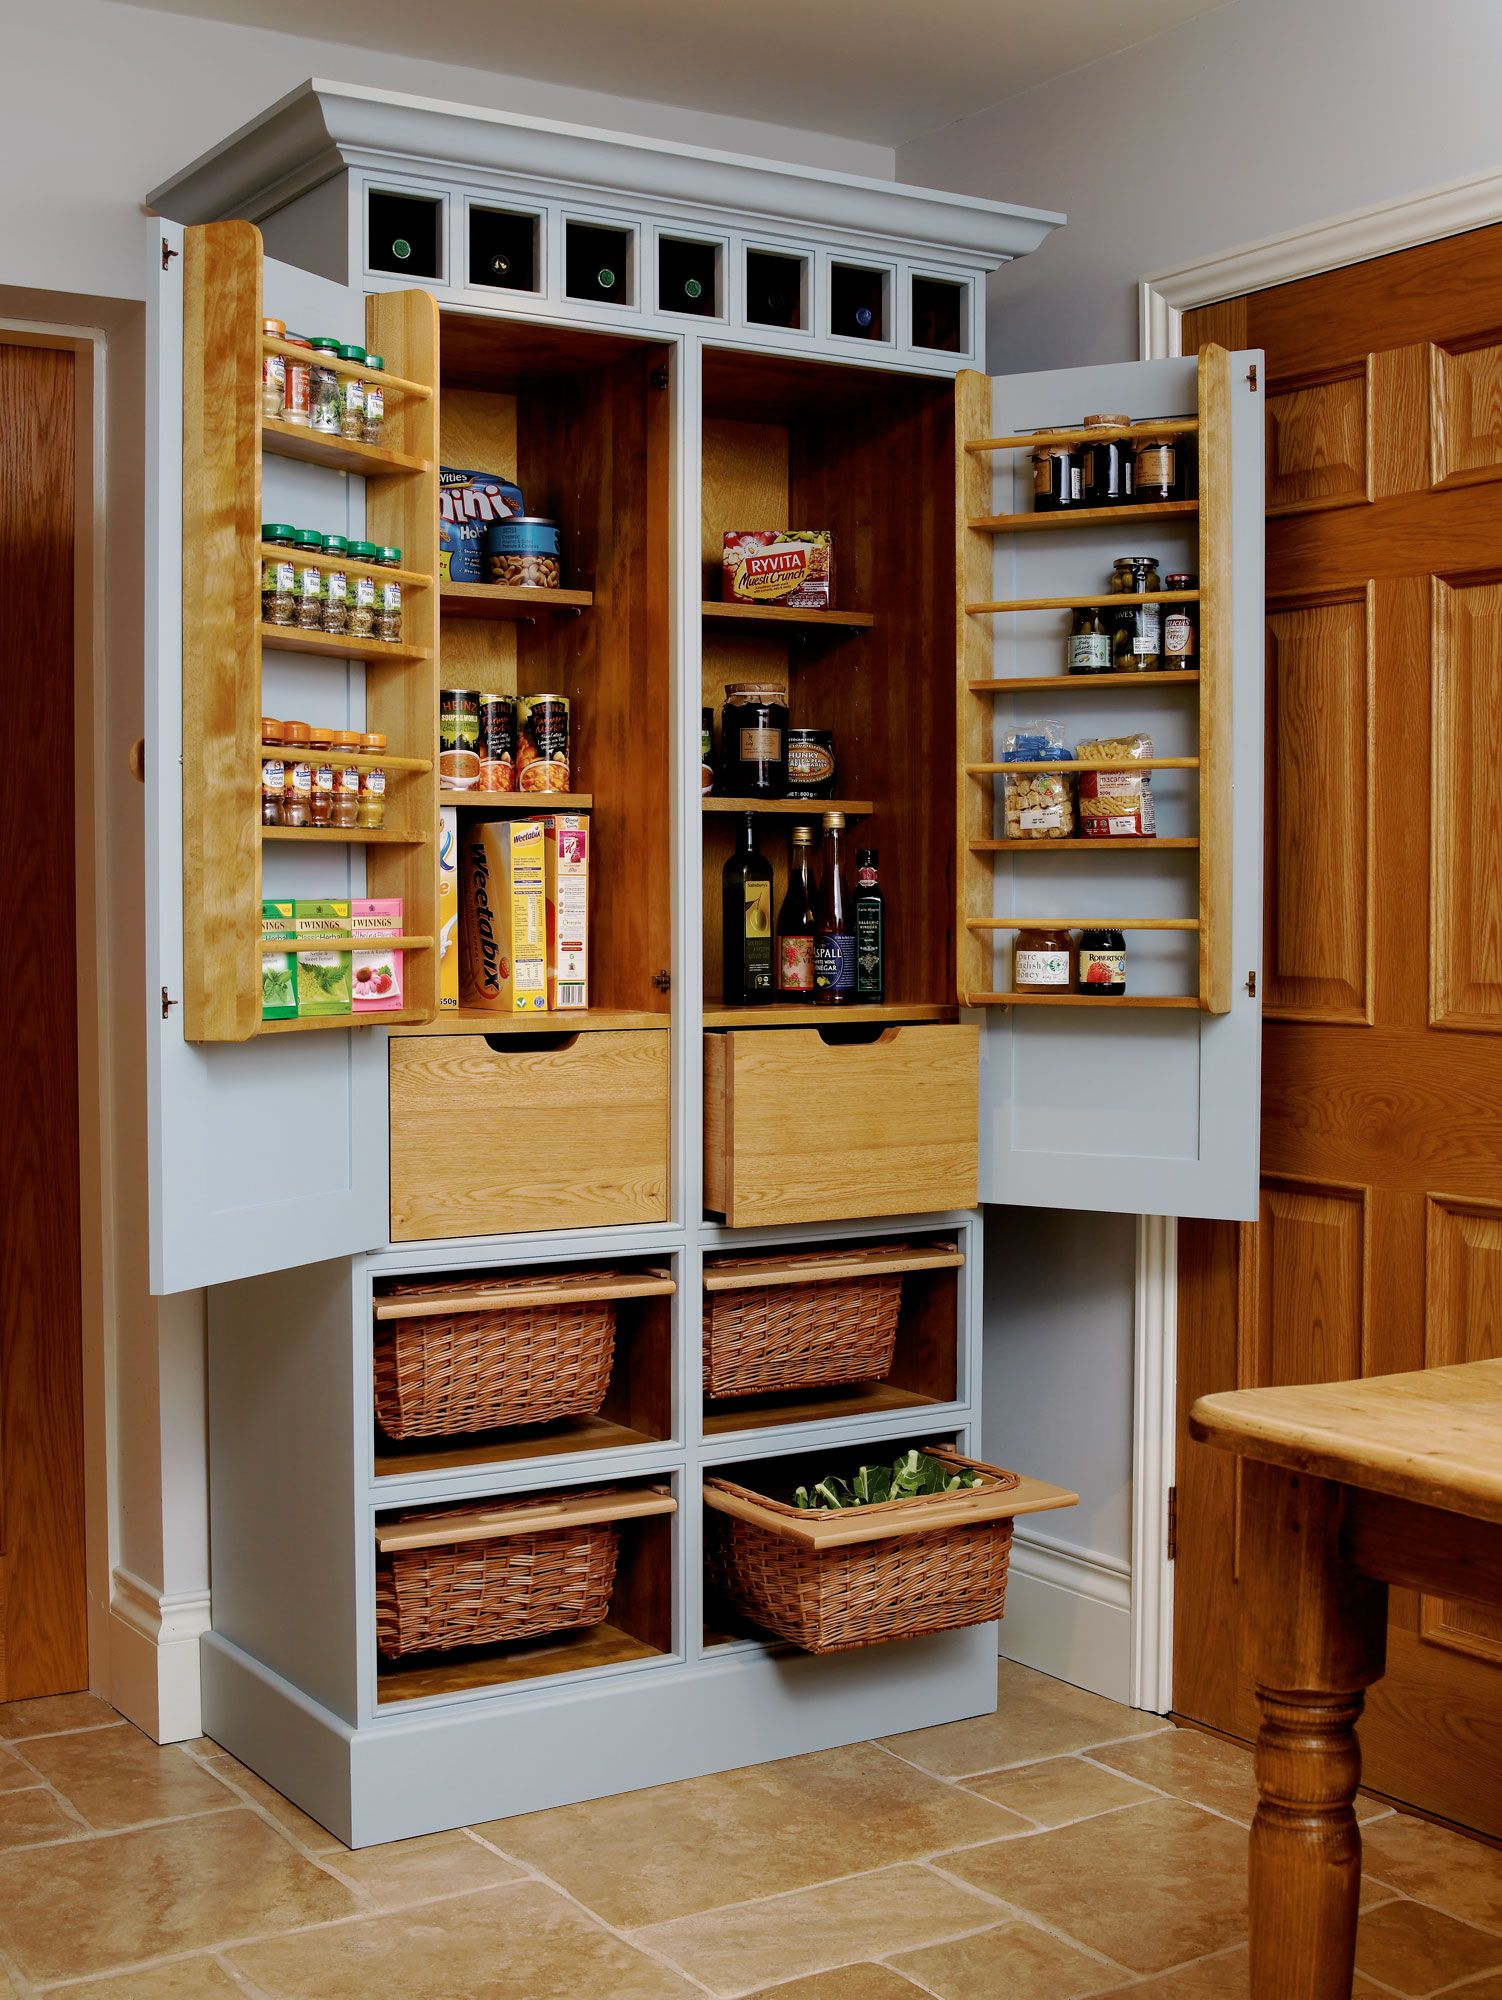 Kitchen Larder C The Bespoke Furniture pany